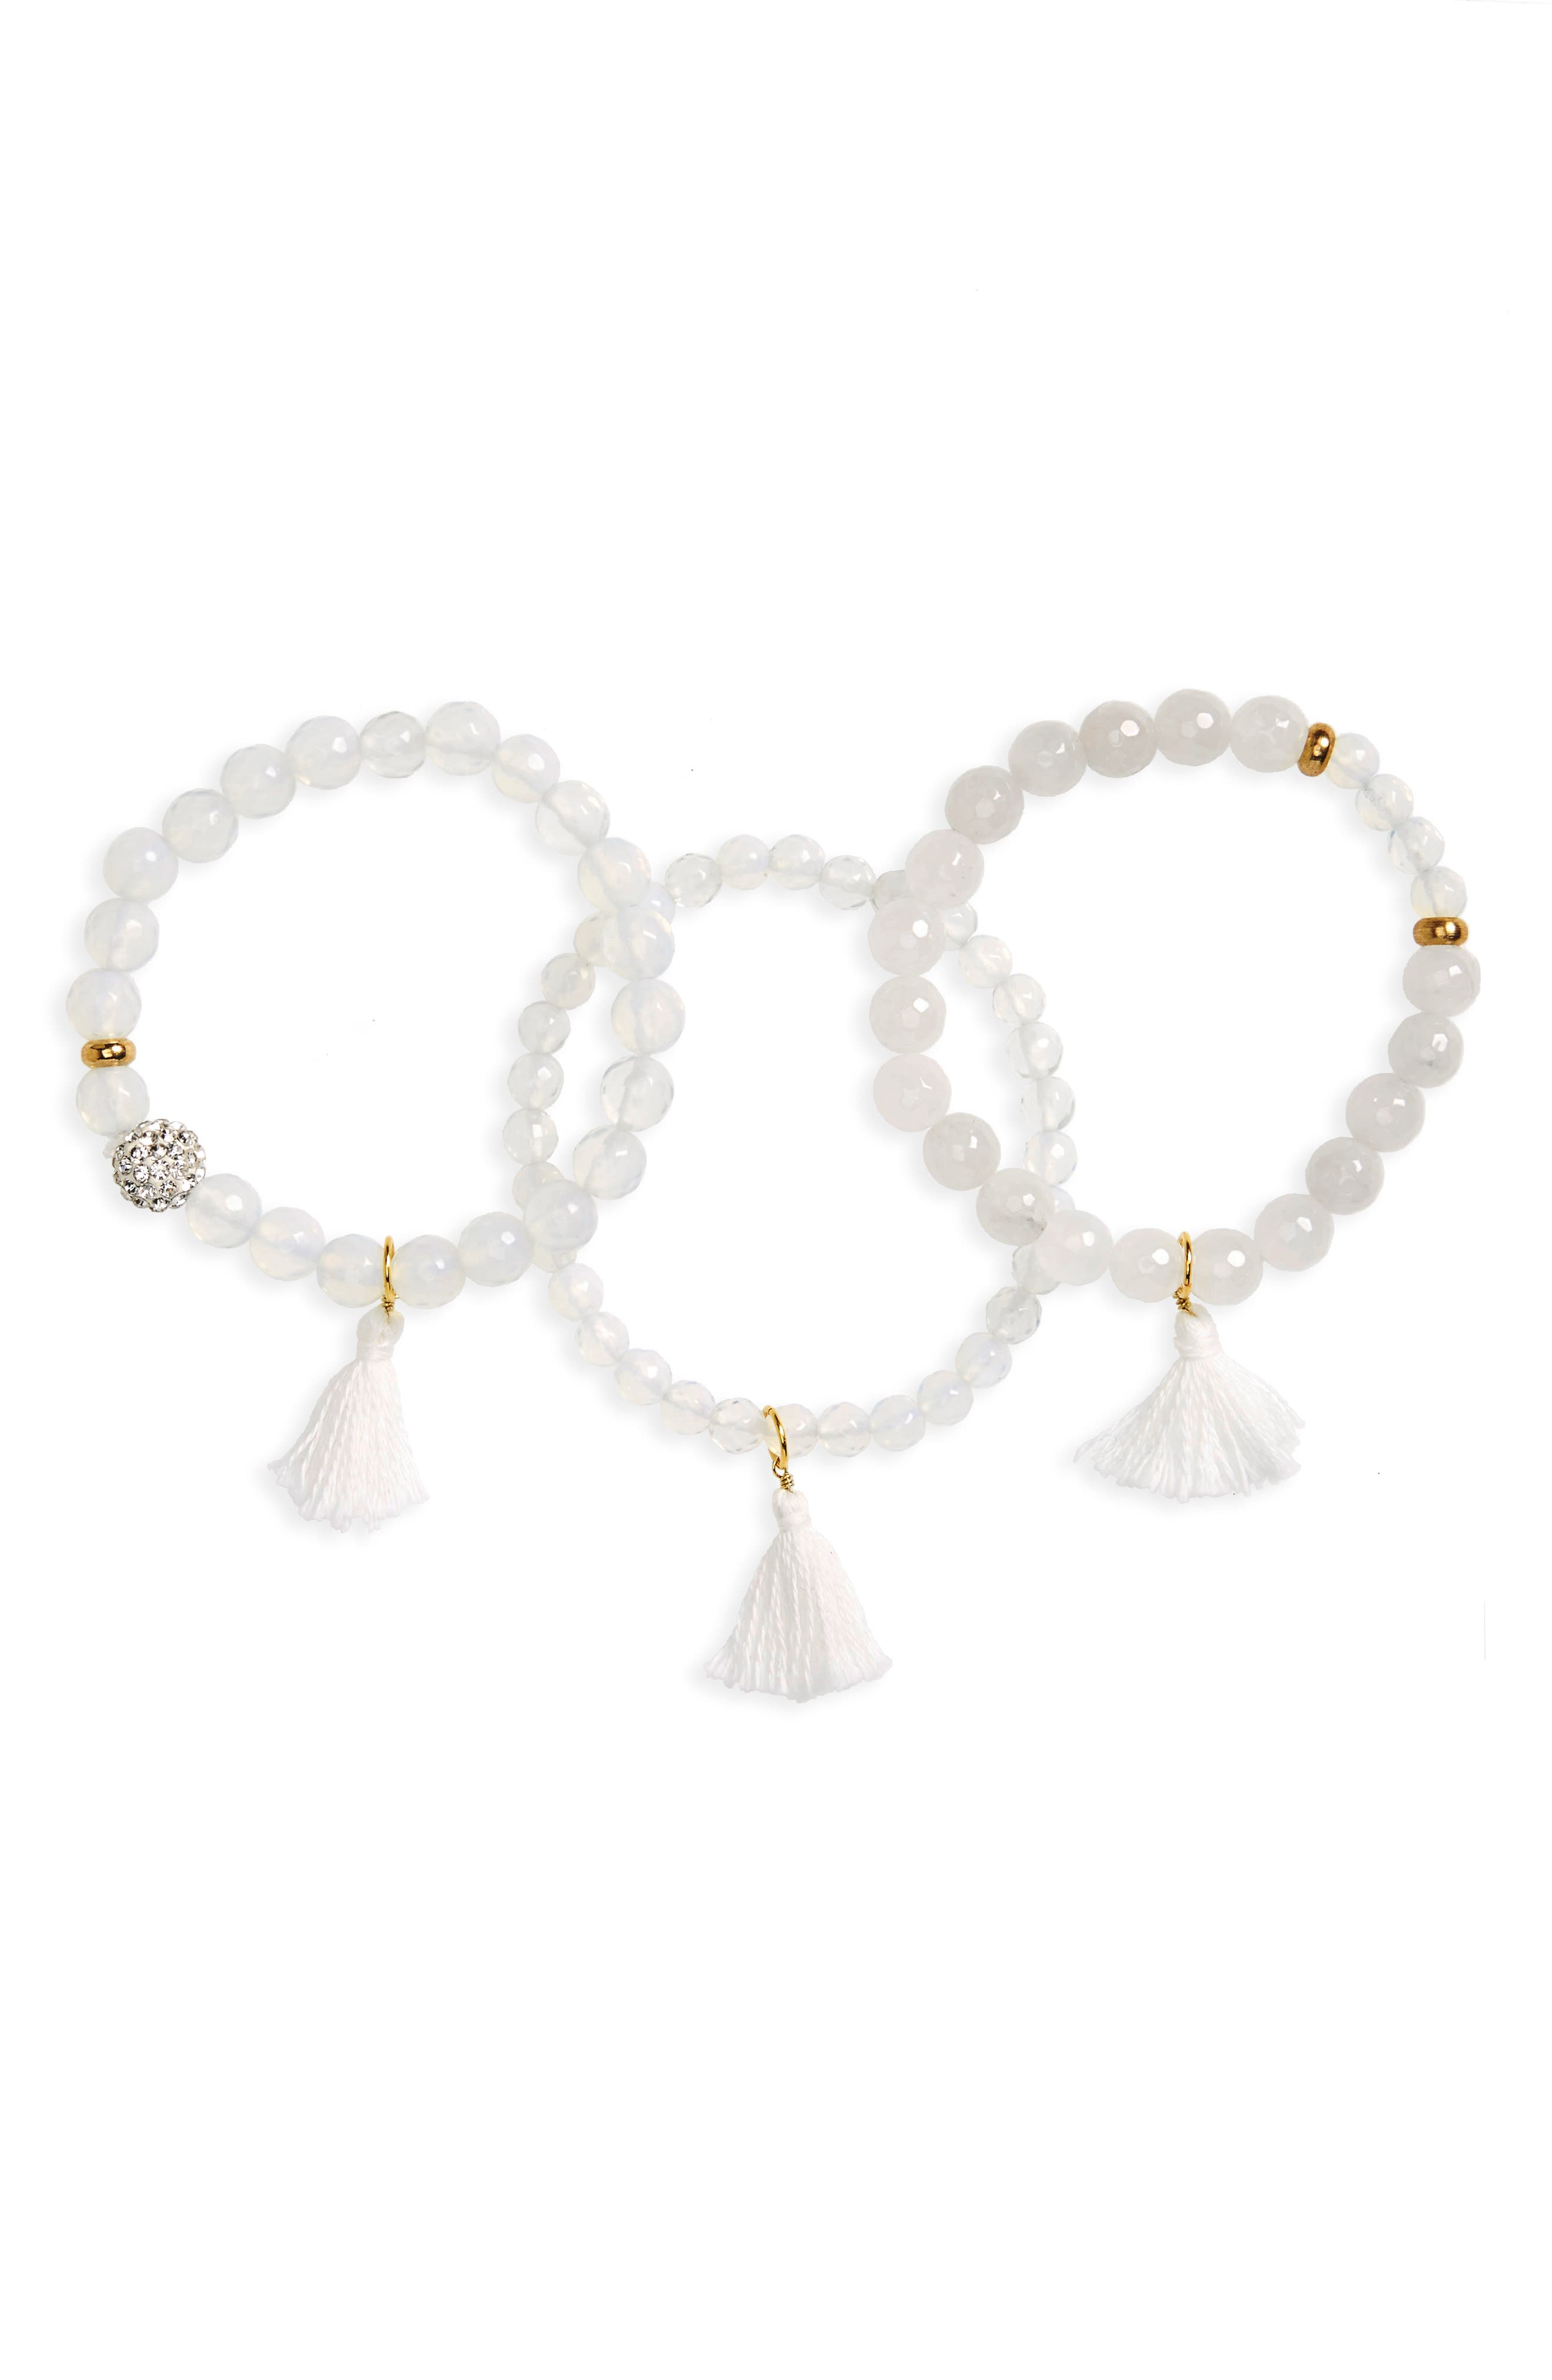 Set of 3 Beaded Stretch Bracelets,                         Main,                         color, White